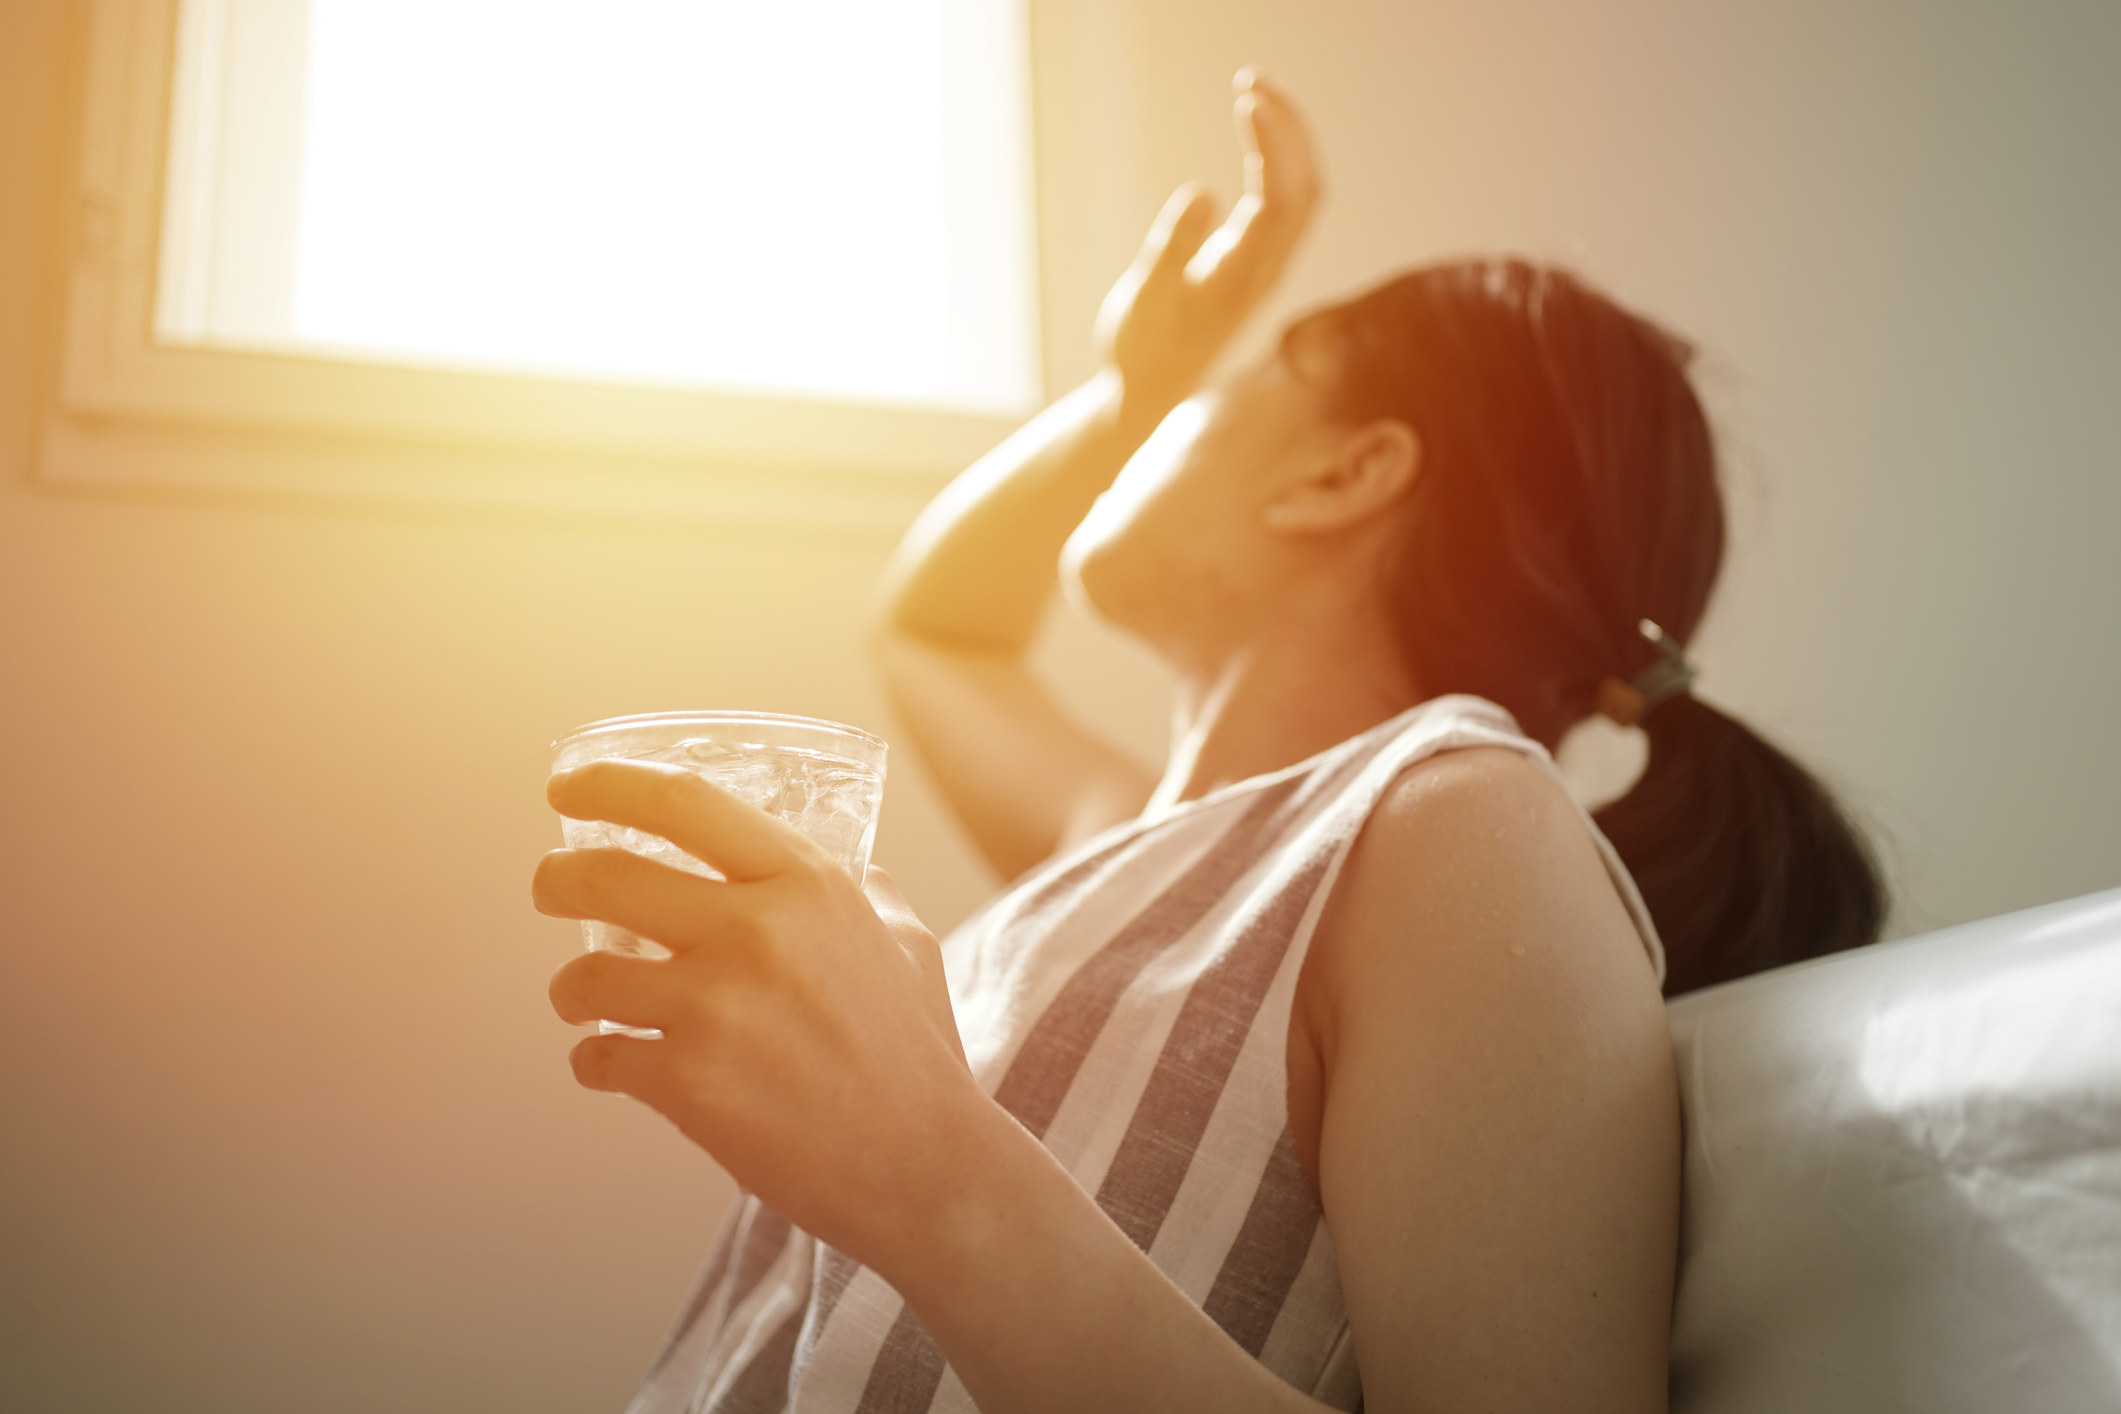 A woman tries to block the sunlight with her hand